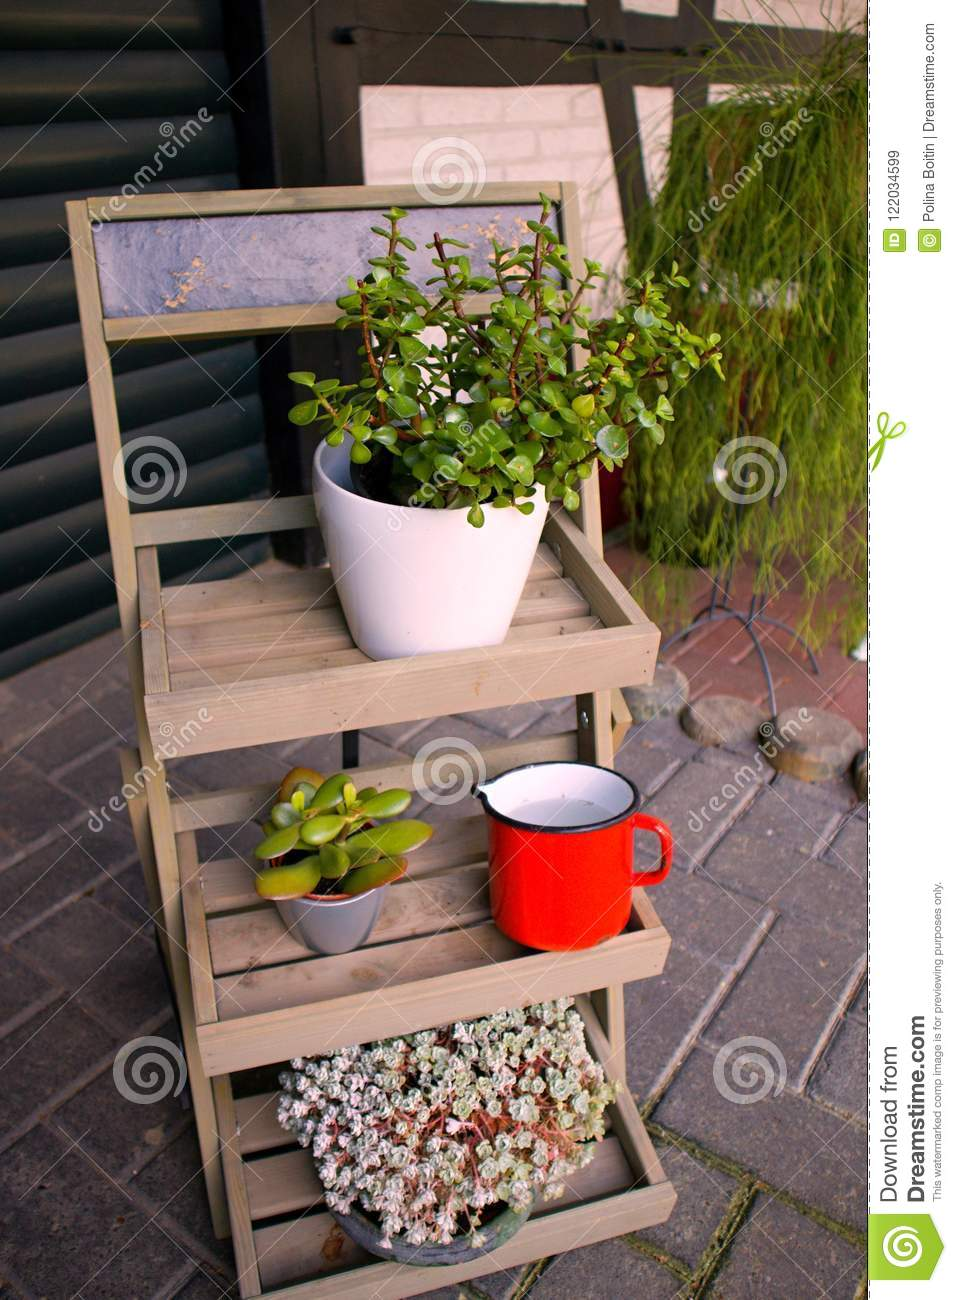 Garden Ideas Simple Design Wood Ladder Plant Stand Stock Image Image Of Antique Easy 122034599